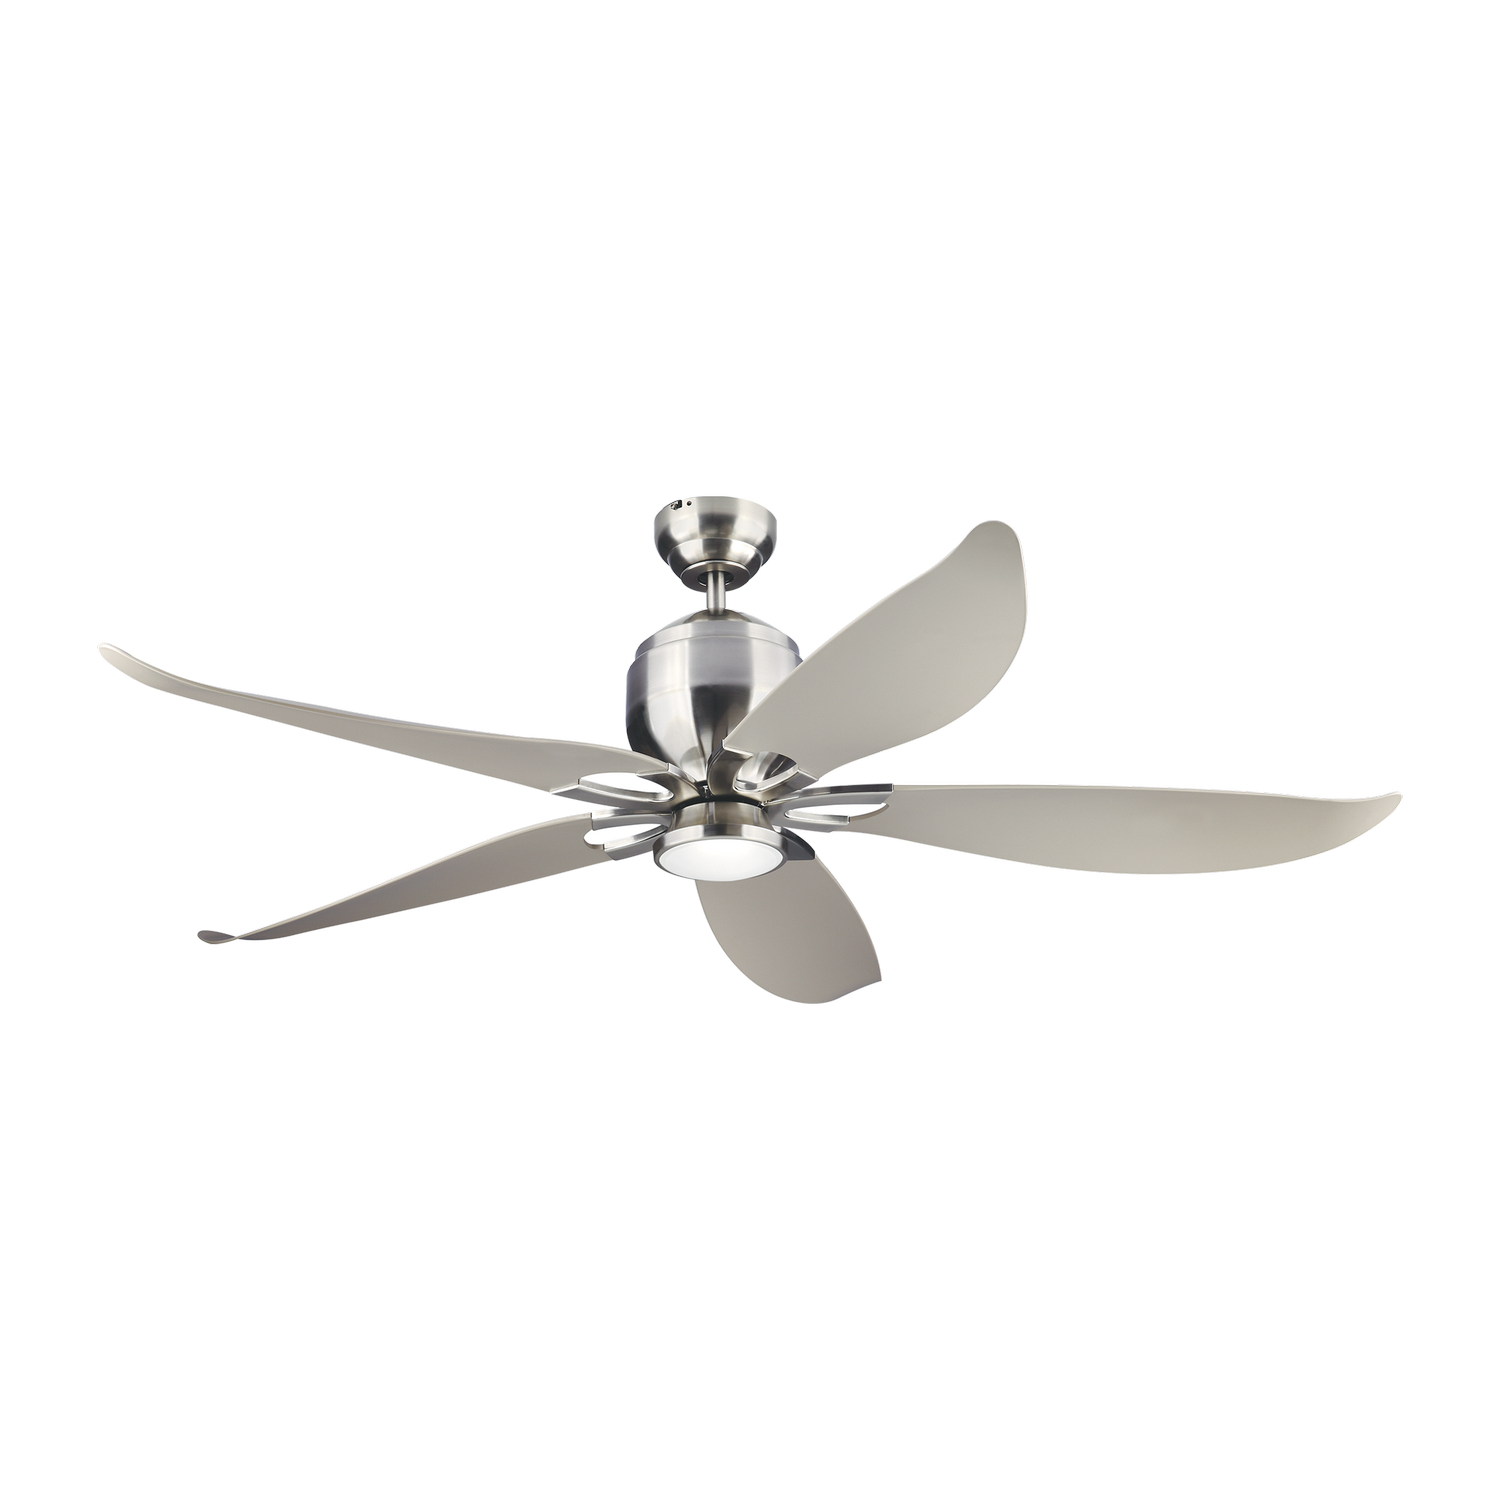 56 inchCeiling Fan from the Lily collection by Monte Carlo 5LLR56BSD V1